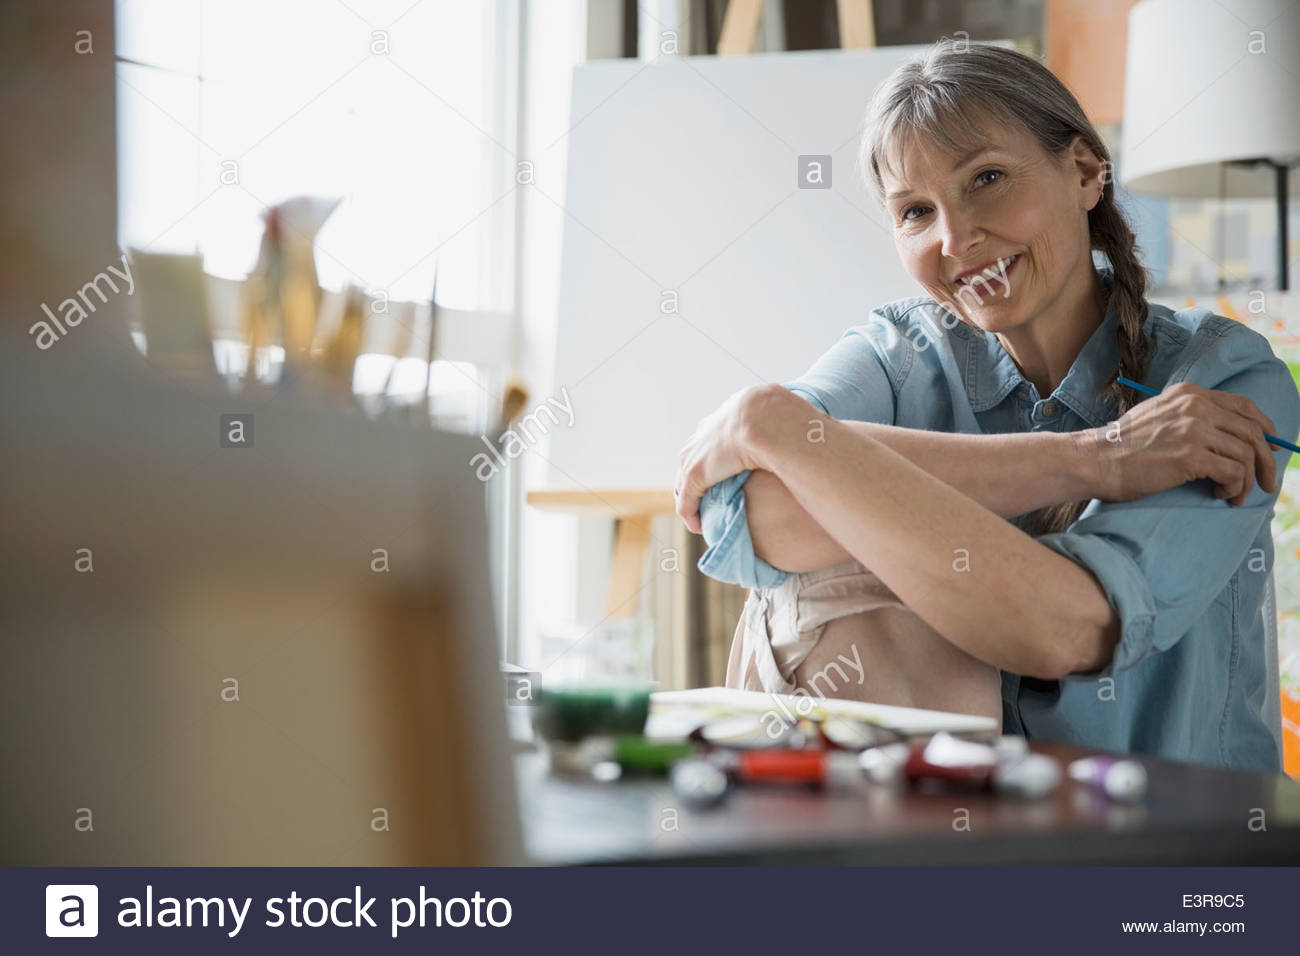 Portrait of smiling woman painting at table - Stock Image